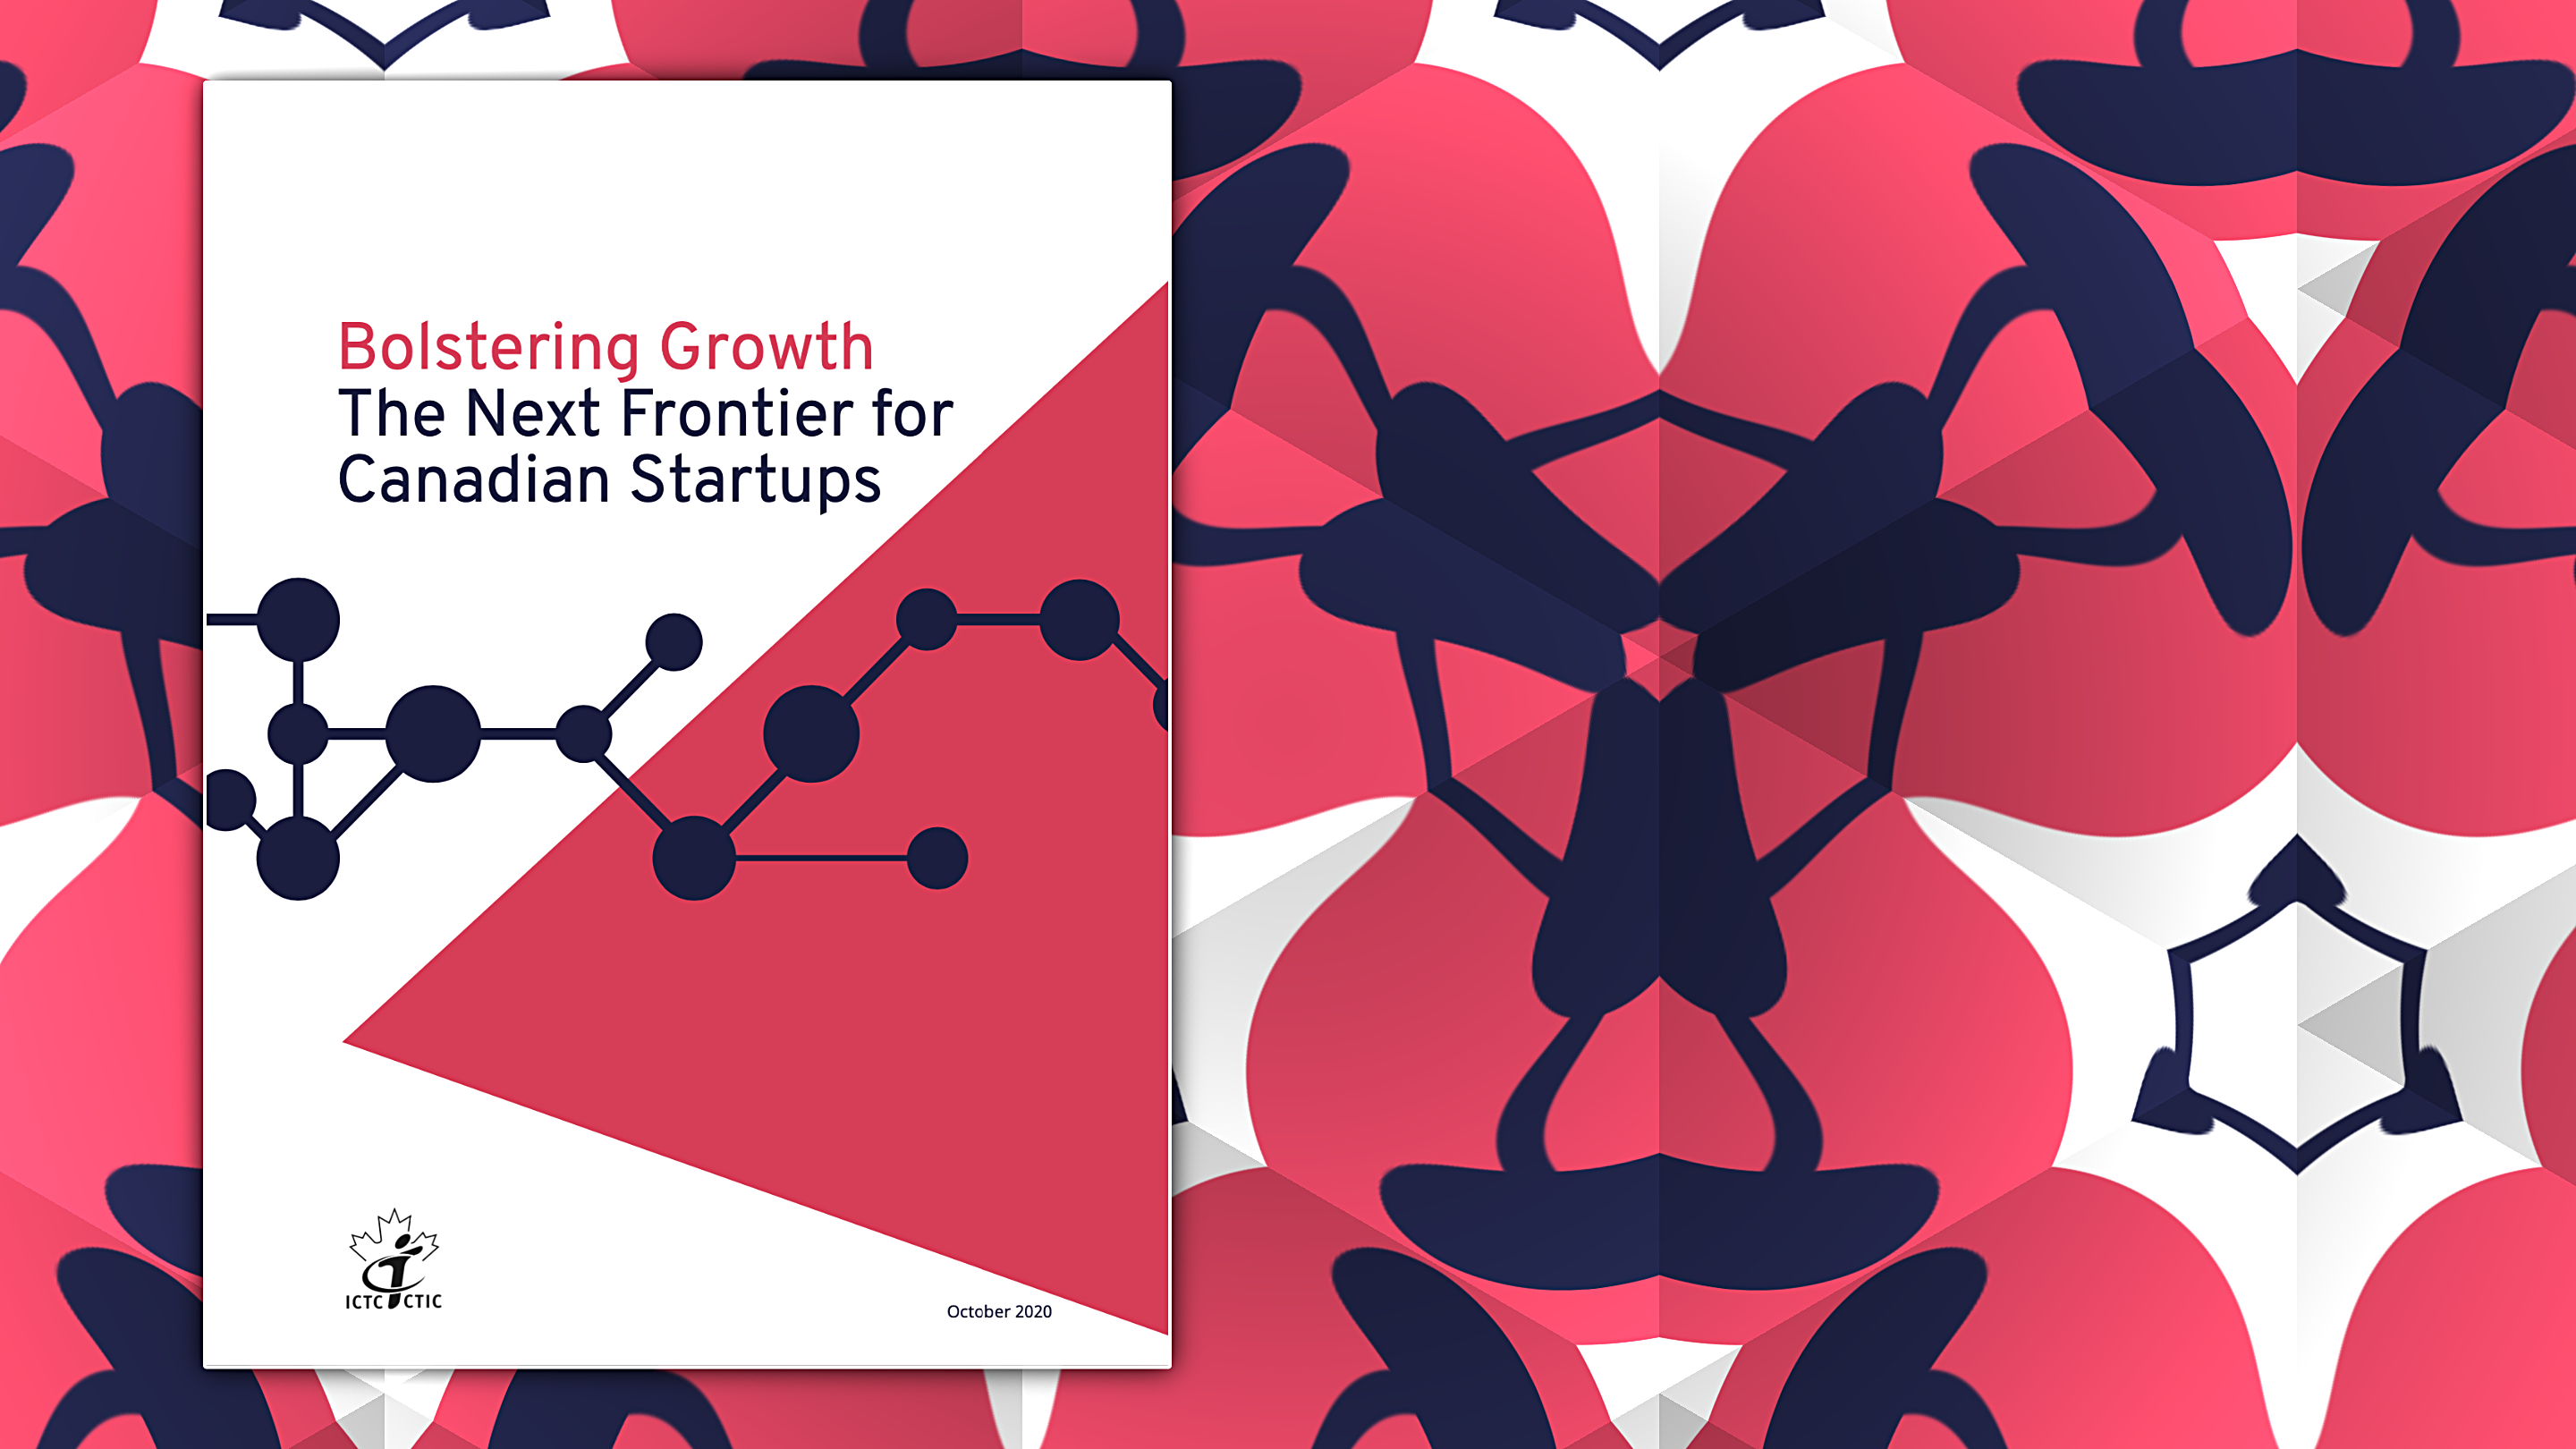 Startups Will Be Critical to Canada's Economic Recovery from COVID—ICTC White Paper, in partnership with ventureLAB